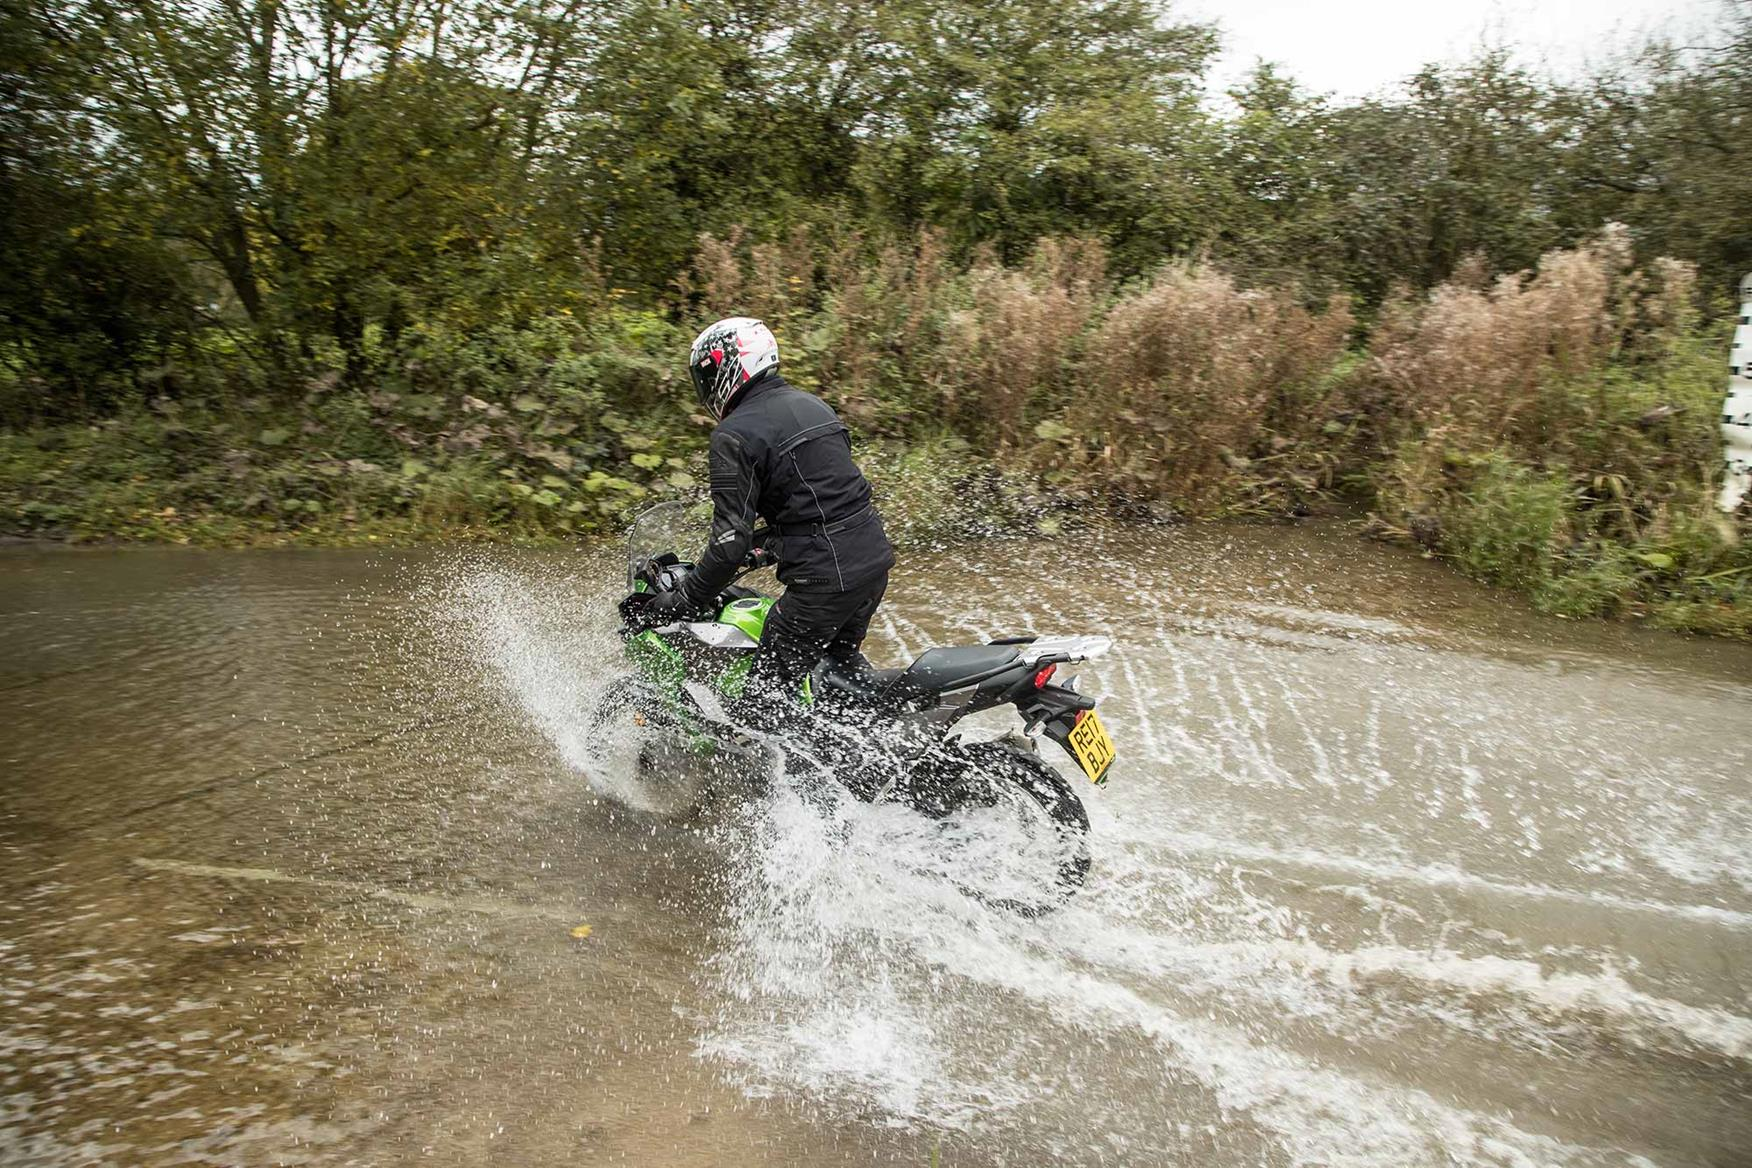 Hitting the water on the Kawasaki